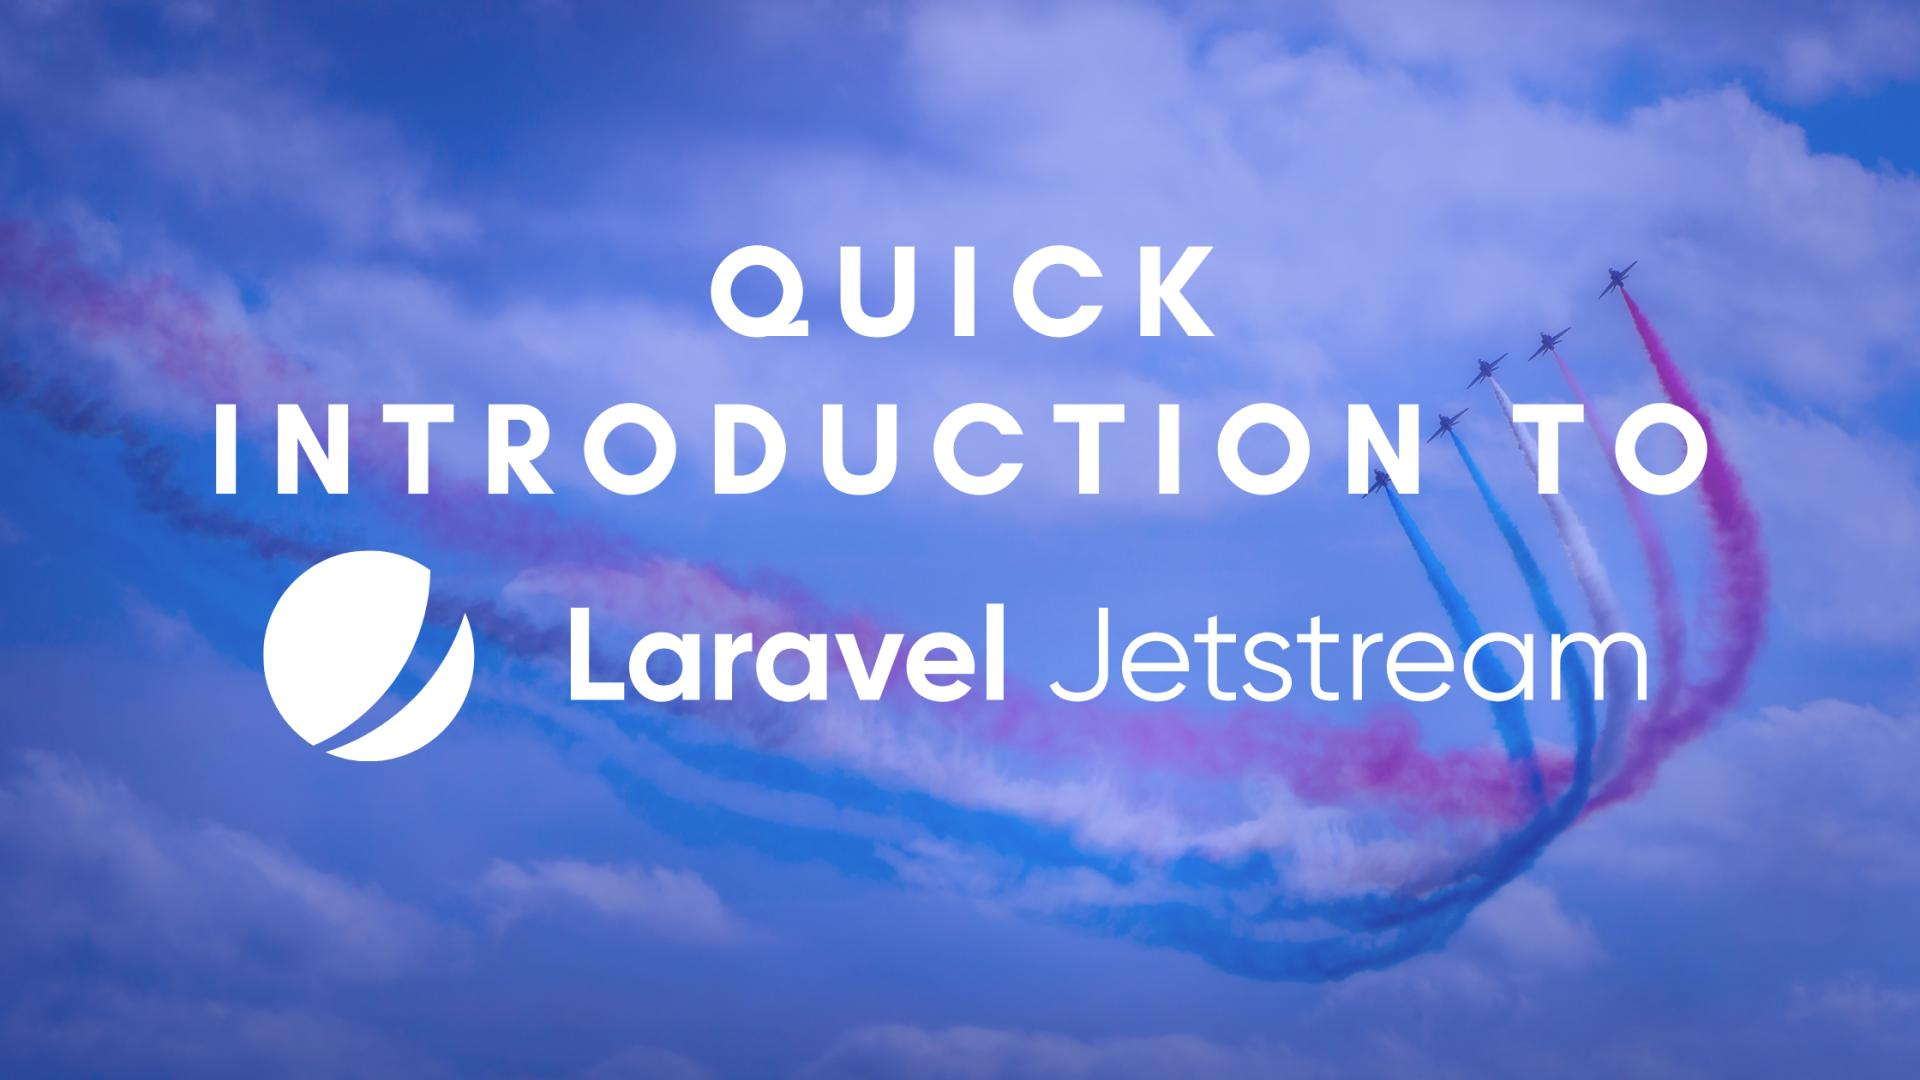 What is Laravel Jetstream and how to get started?